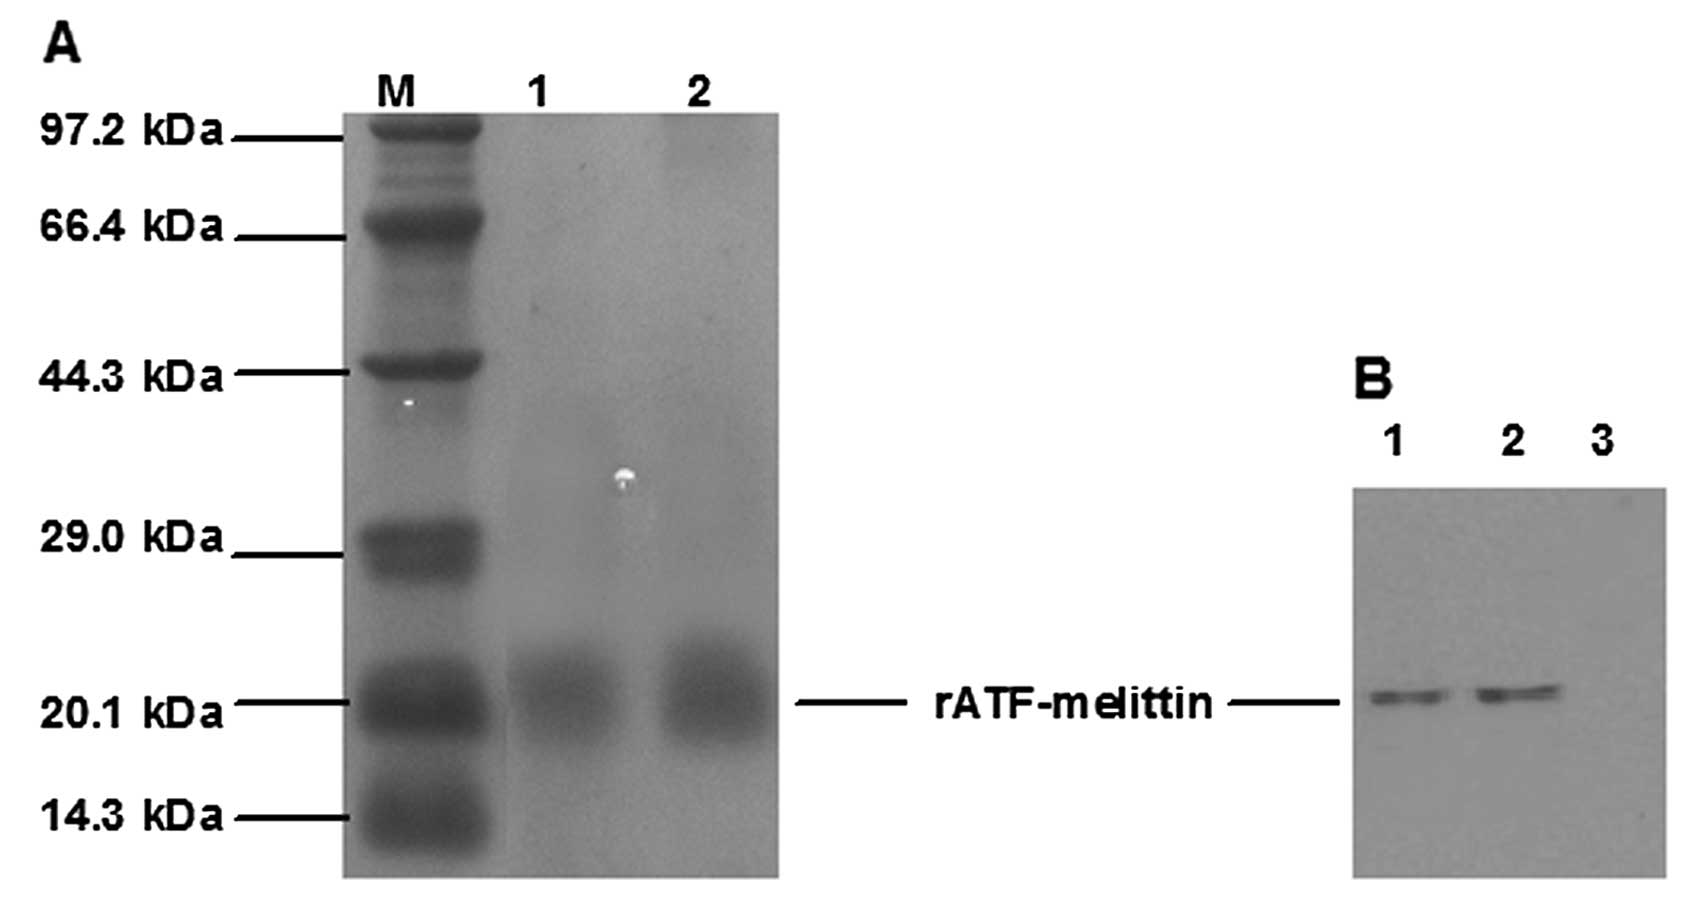 Expression And Purification Of Recombinant Atf Mellitin A New Type Fusion Protein Targeting